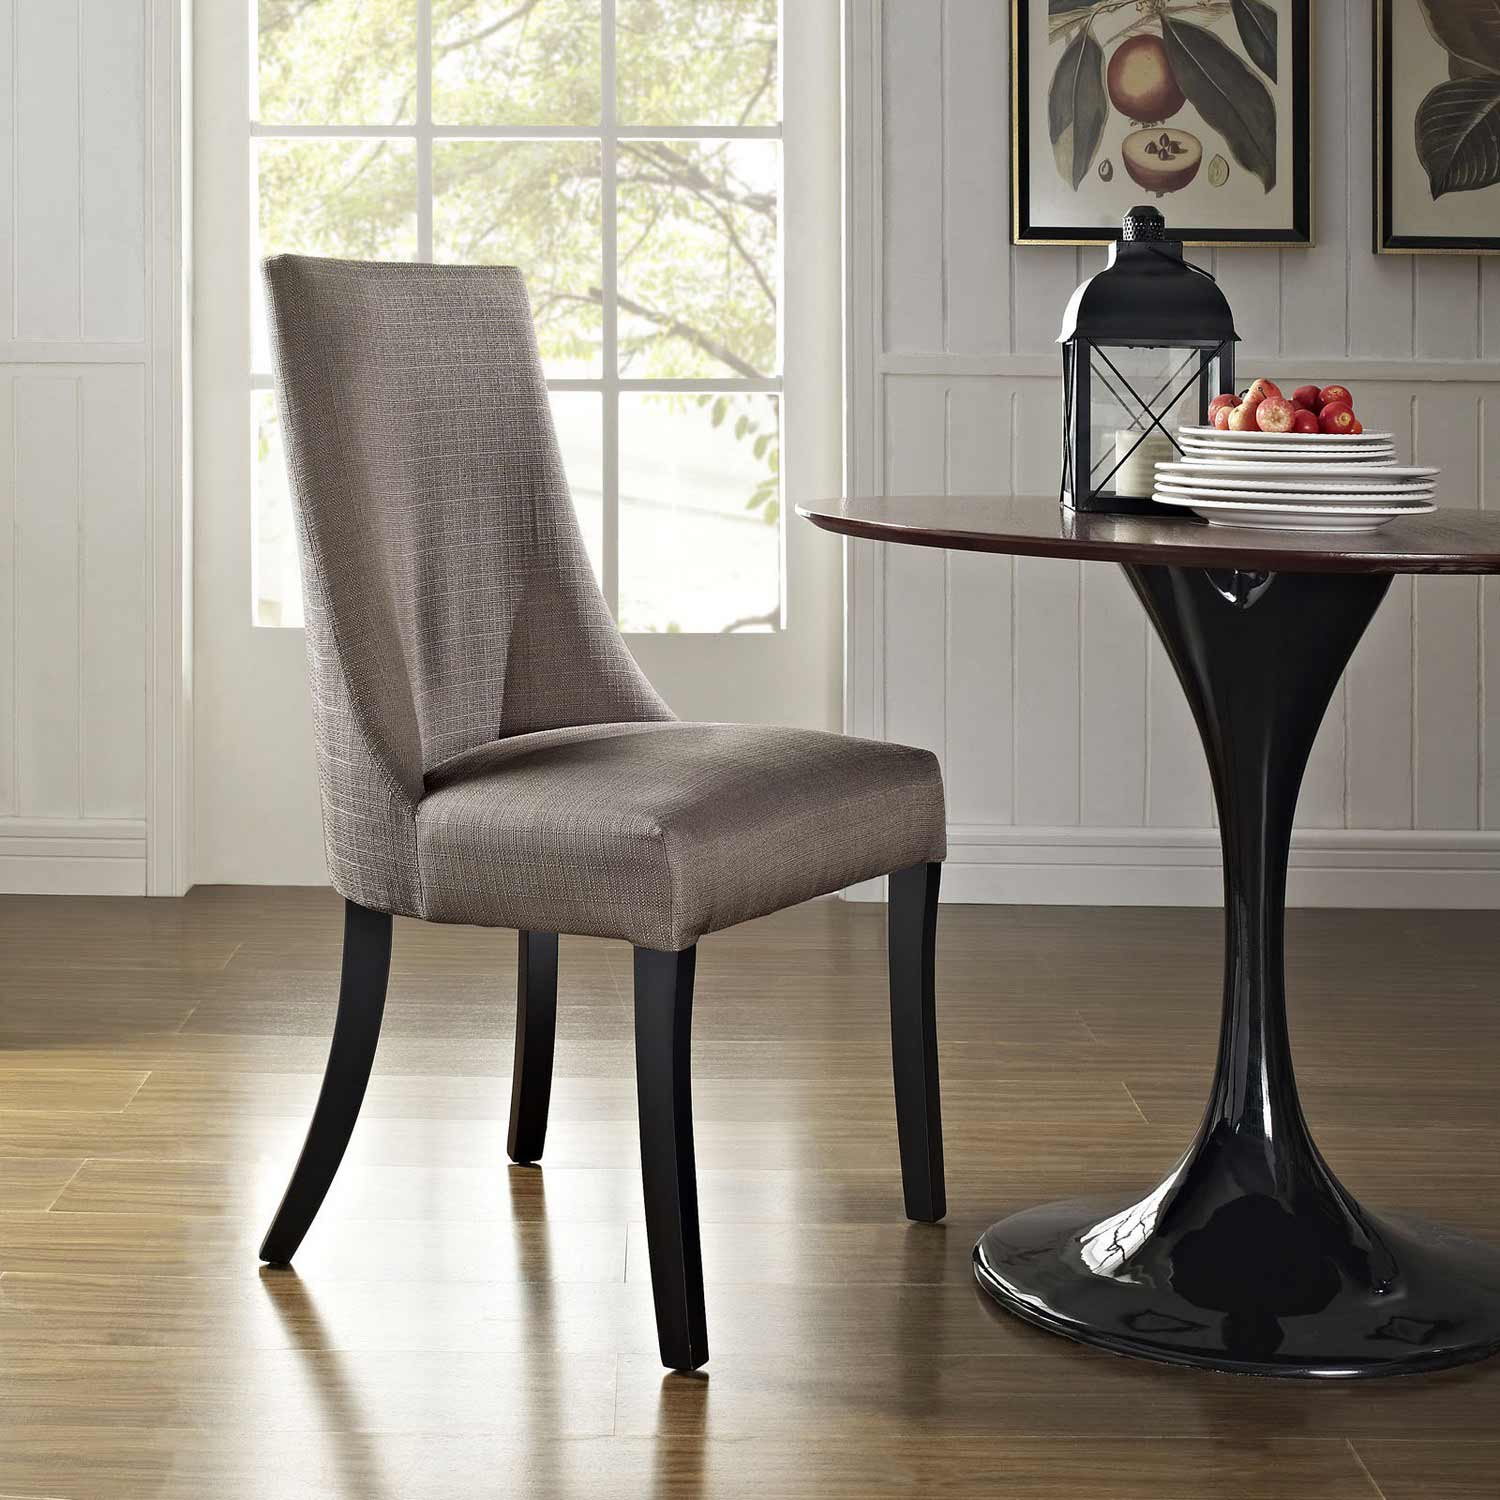 Modway Reverie Dining Side Chair - Gray